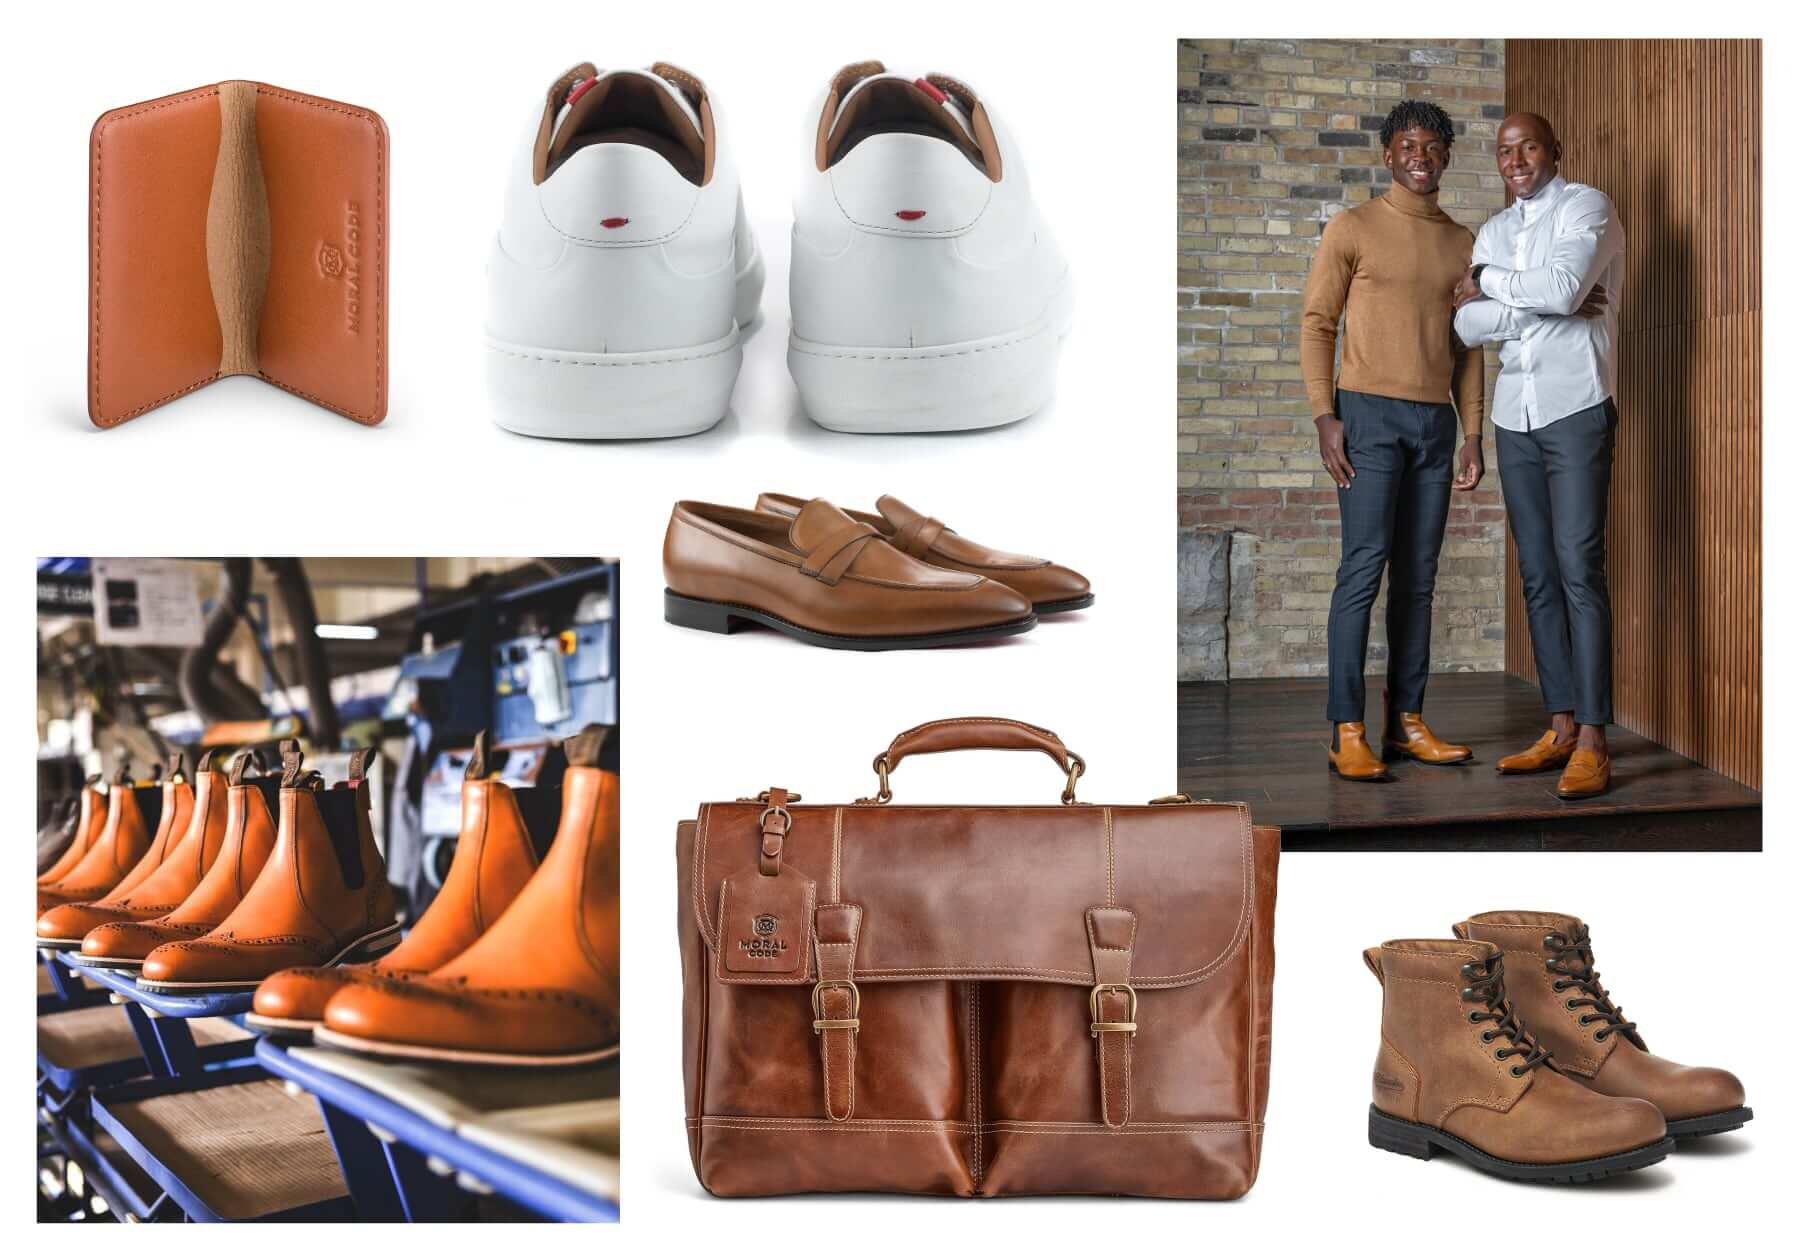 Moral Code and Milwaukee Boot Co. leather goods giveaway